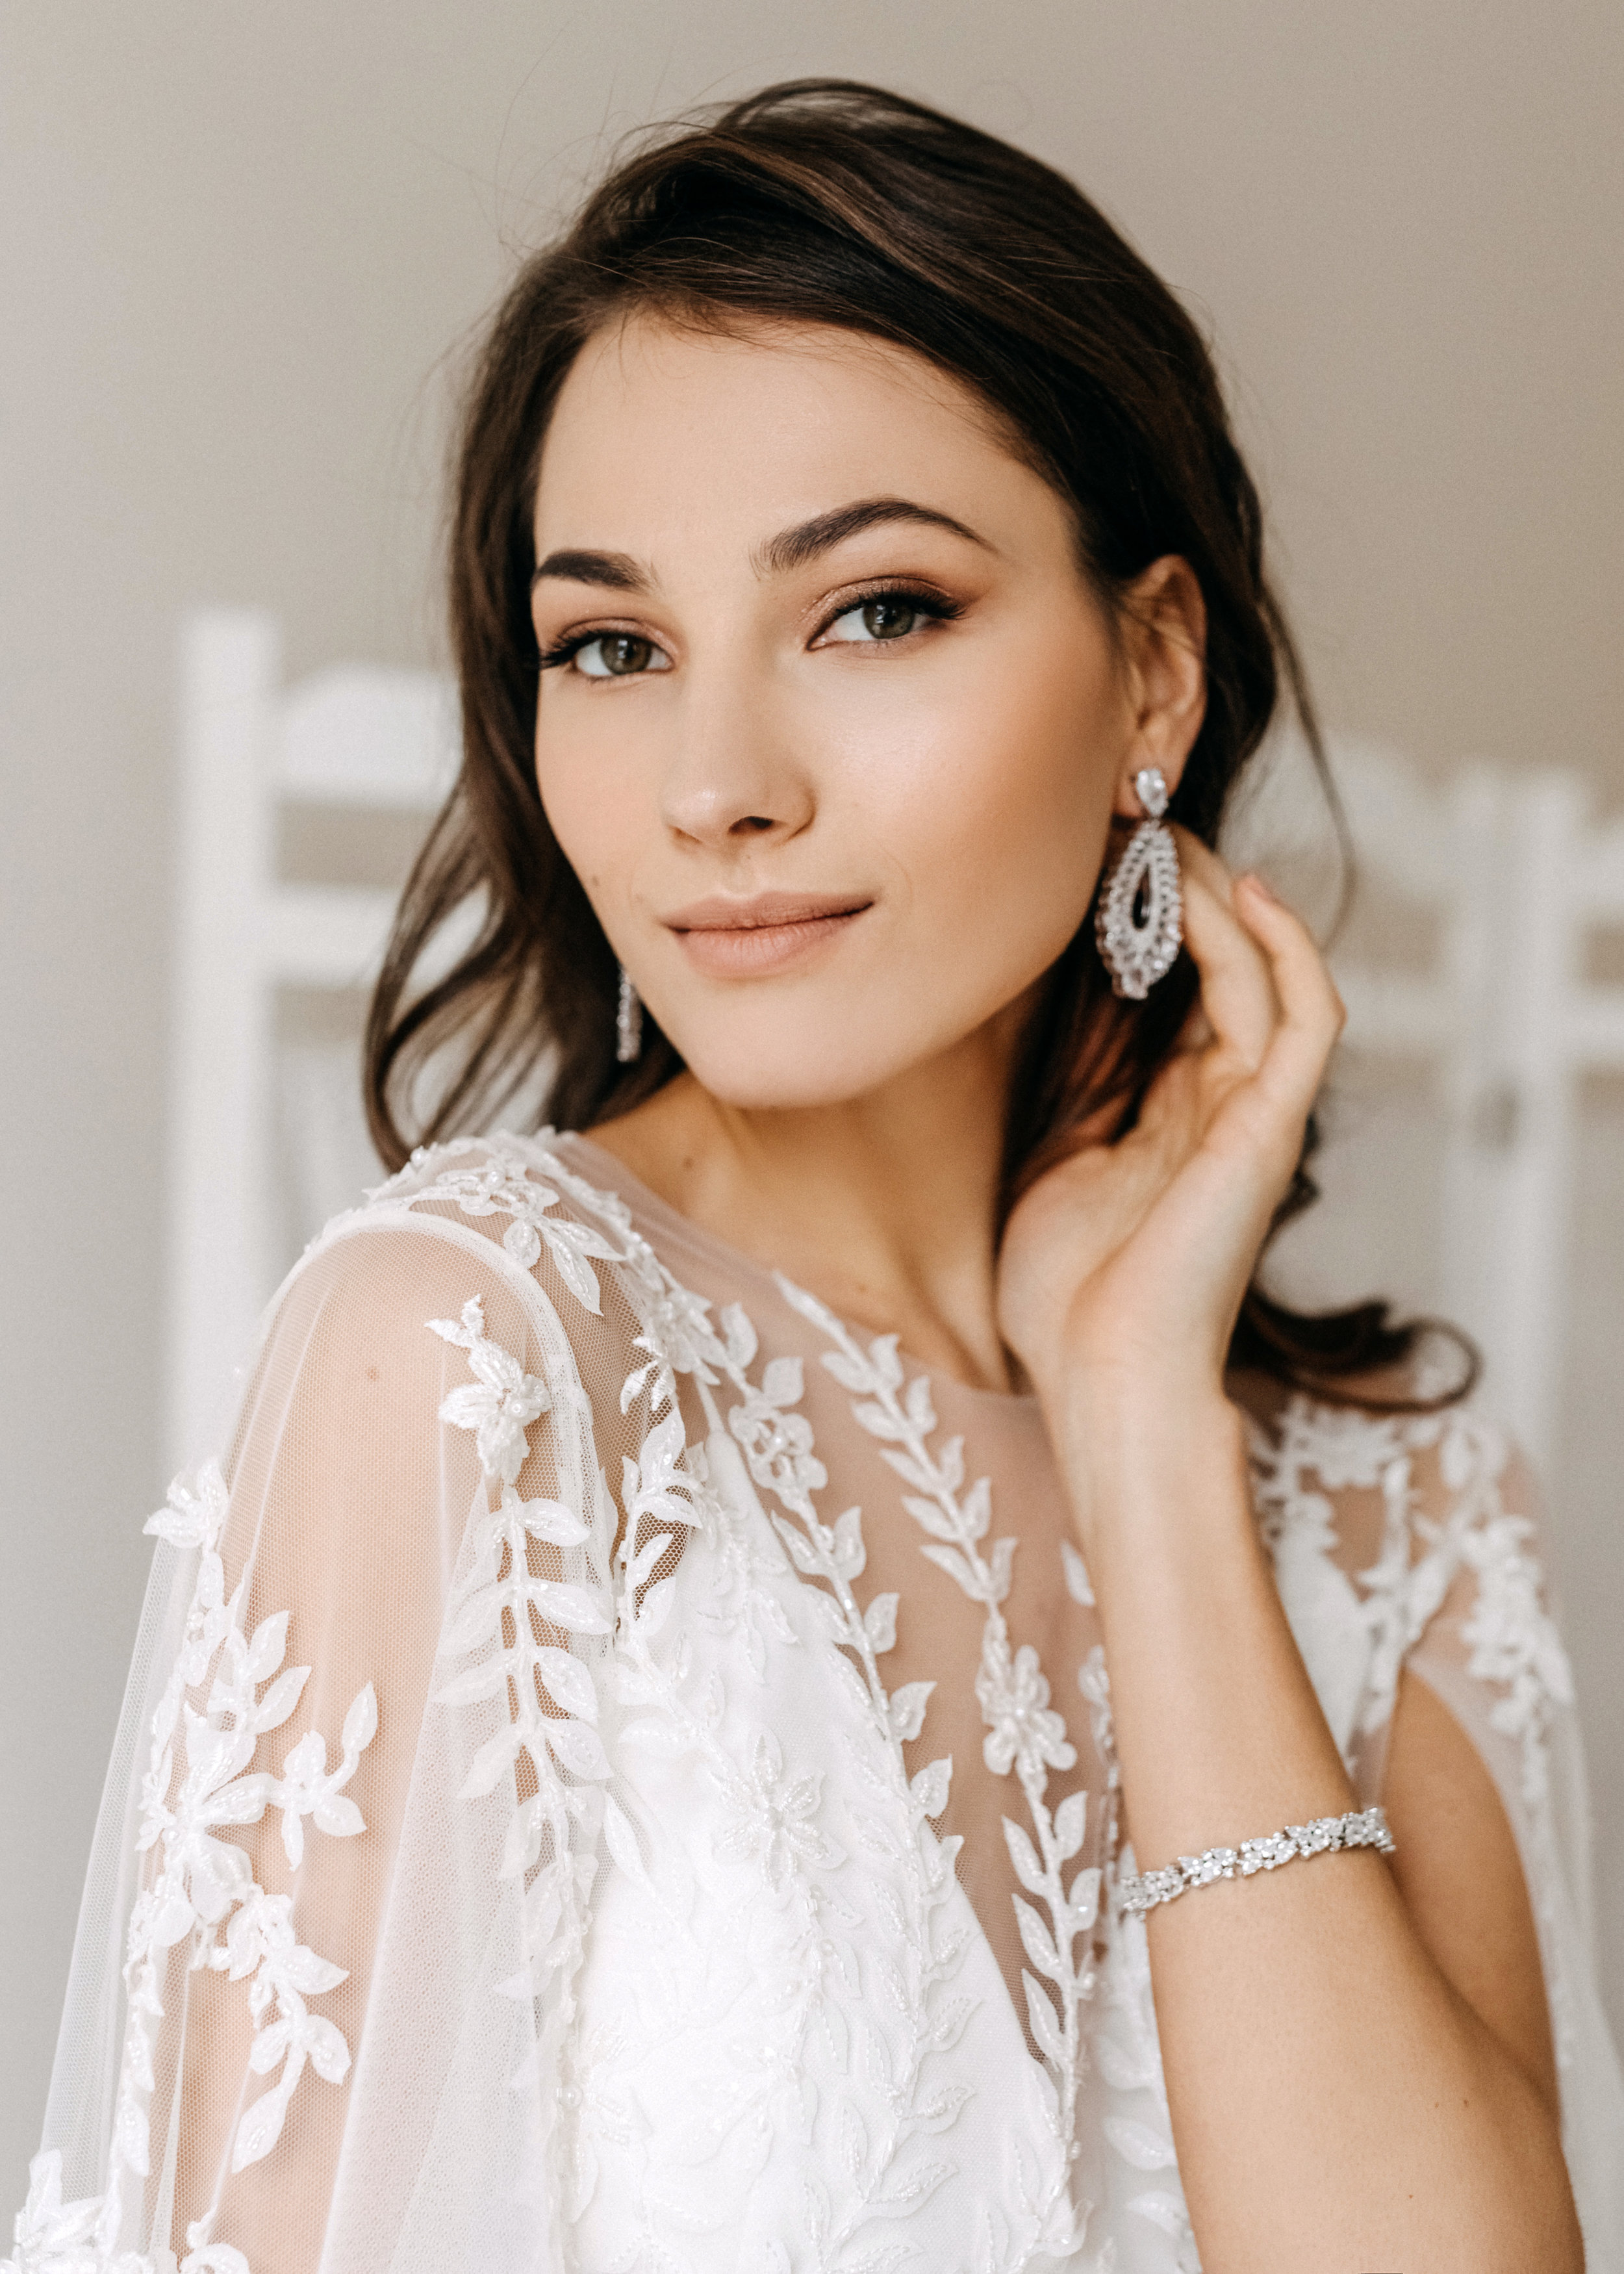 Find your perfect Bridal Jewellery - Handmade in SwitzerlandUnique DesignPossibility to Rush OrdersFree Shipping WorldwideFast response on your questions